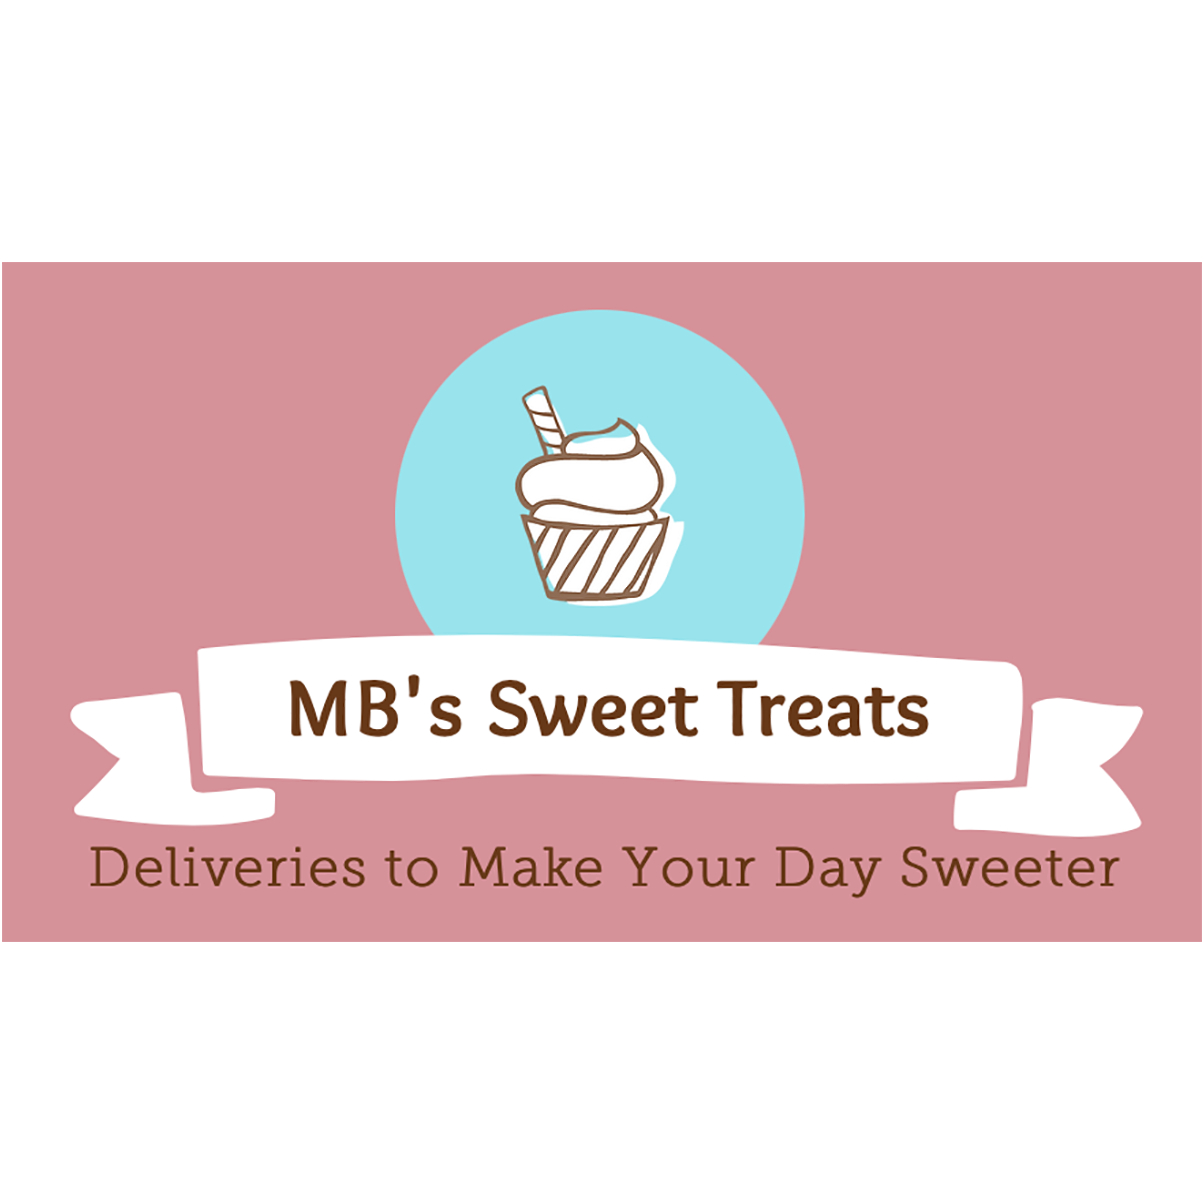 MB's Sweet Treats